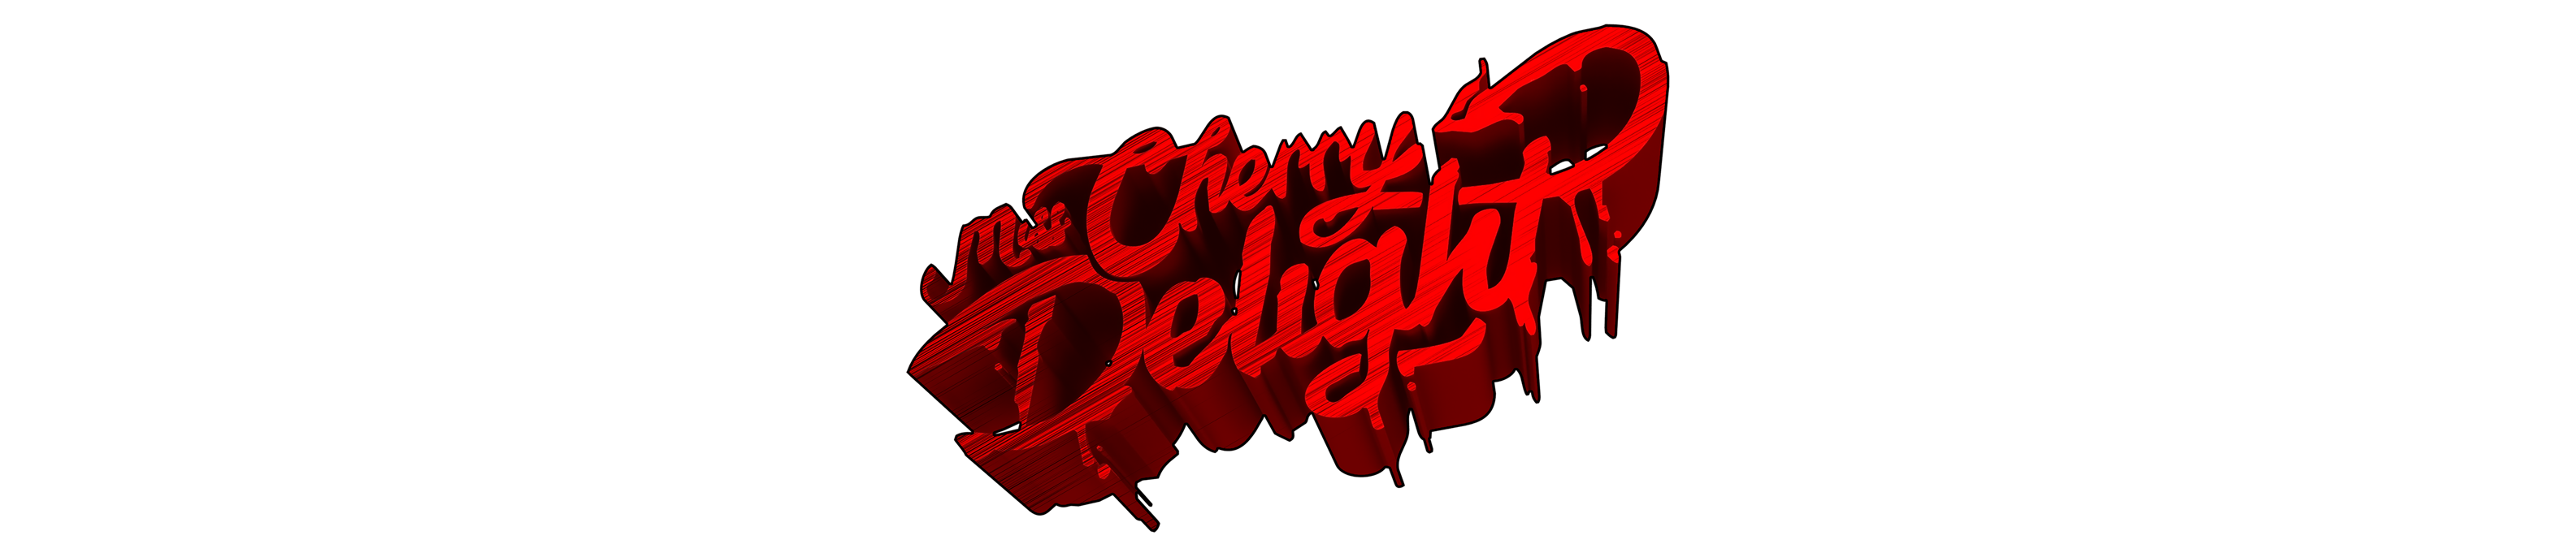 MISS CHERRY DELIGHT